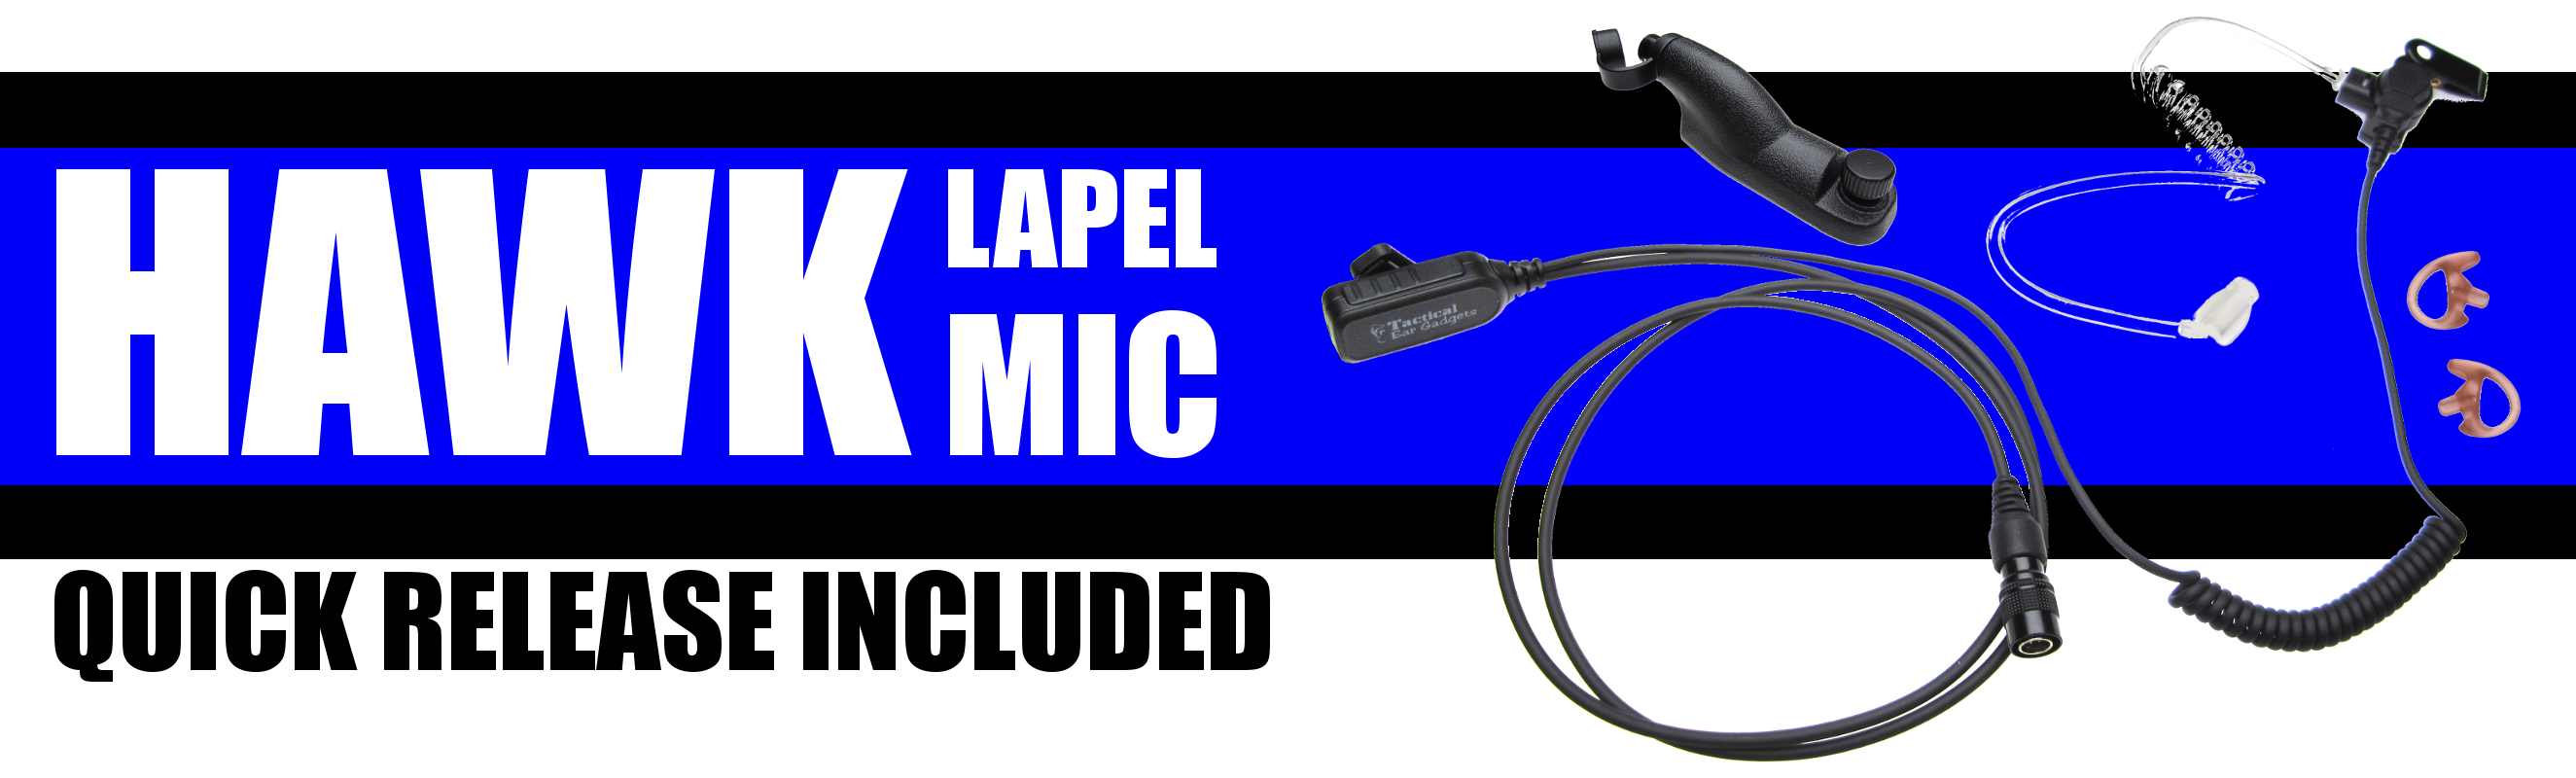 Hawk Lapel Mic Quick Release